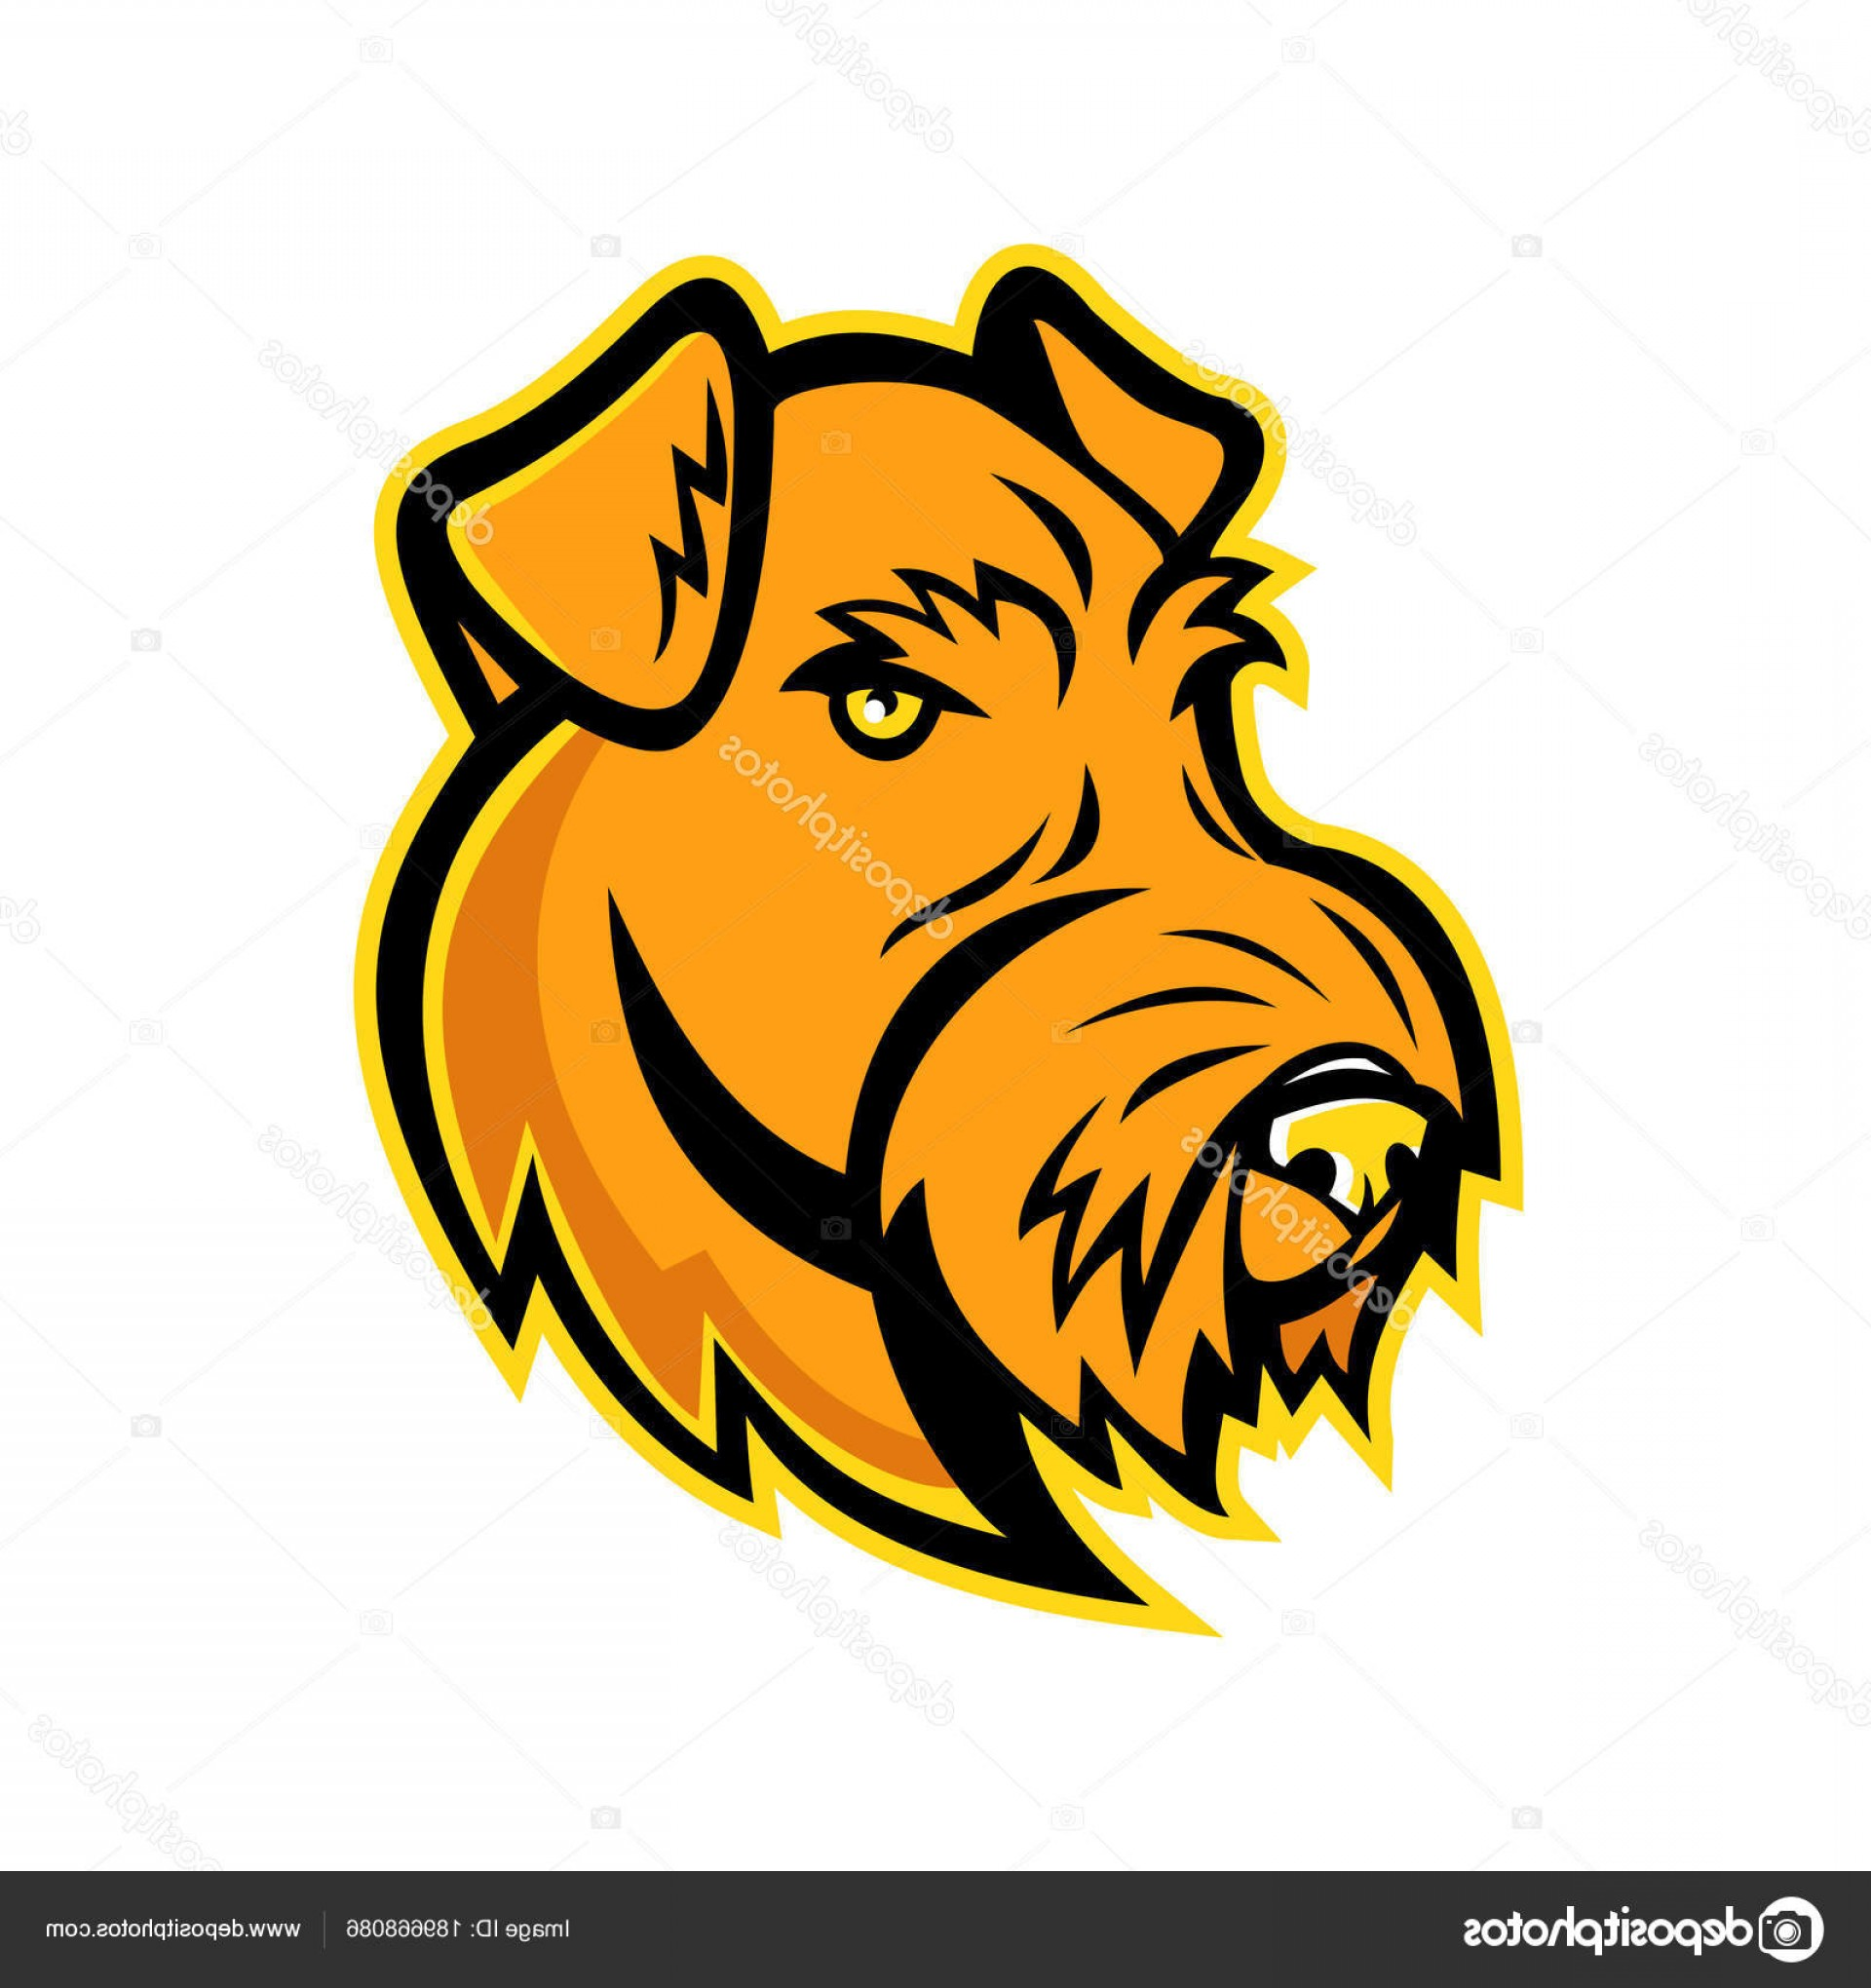 Dog Mascot Vector: Stock Illustration Airedale Terrier Dog Mascot